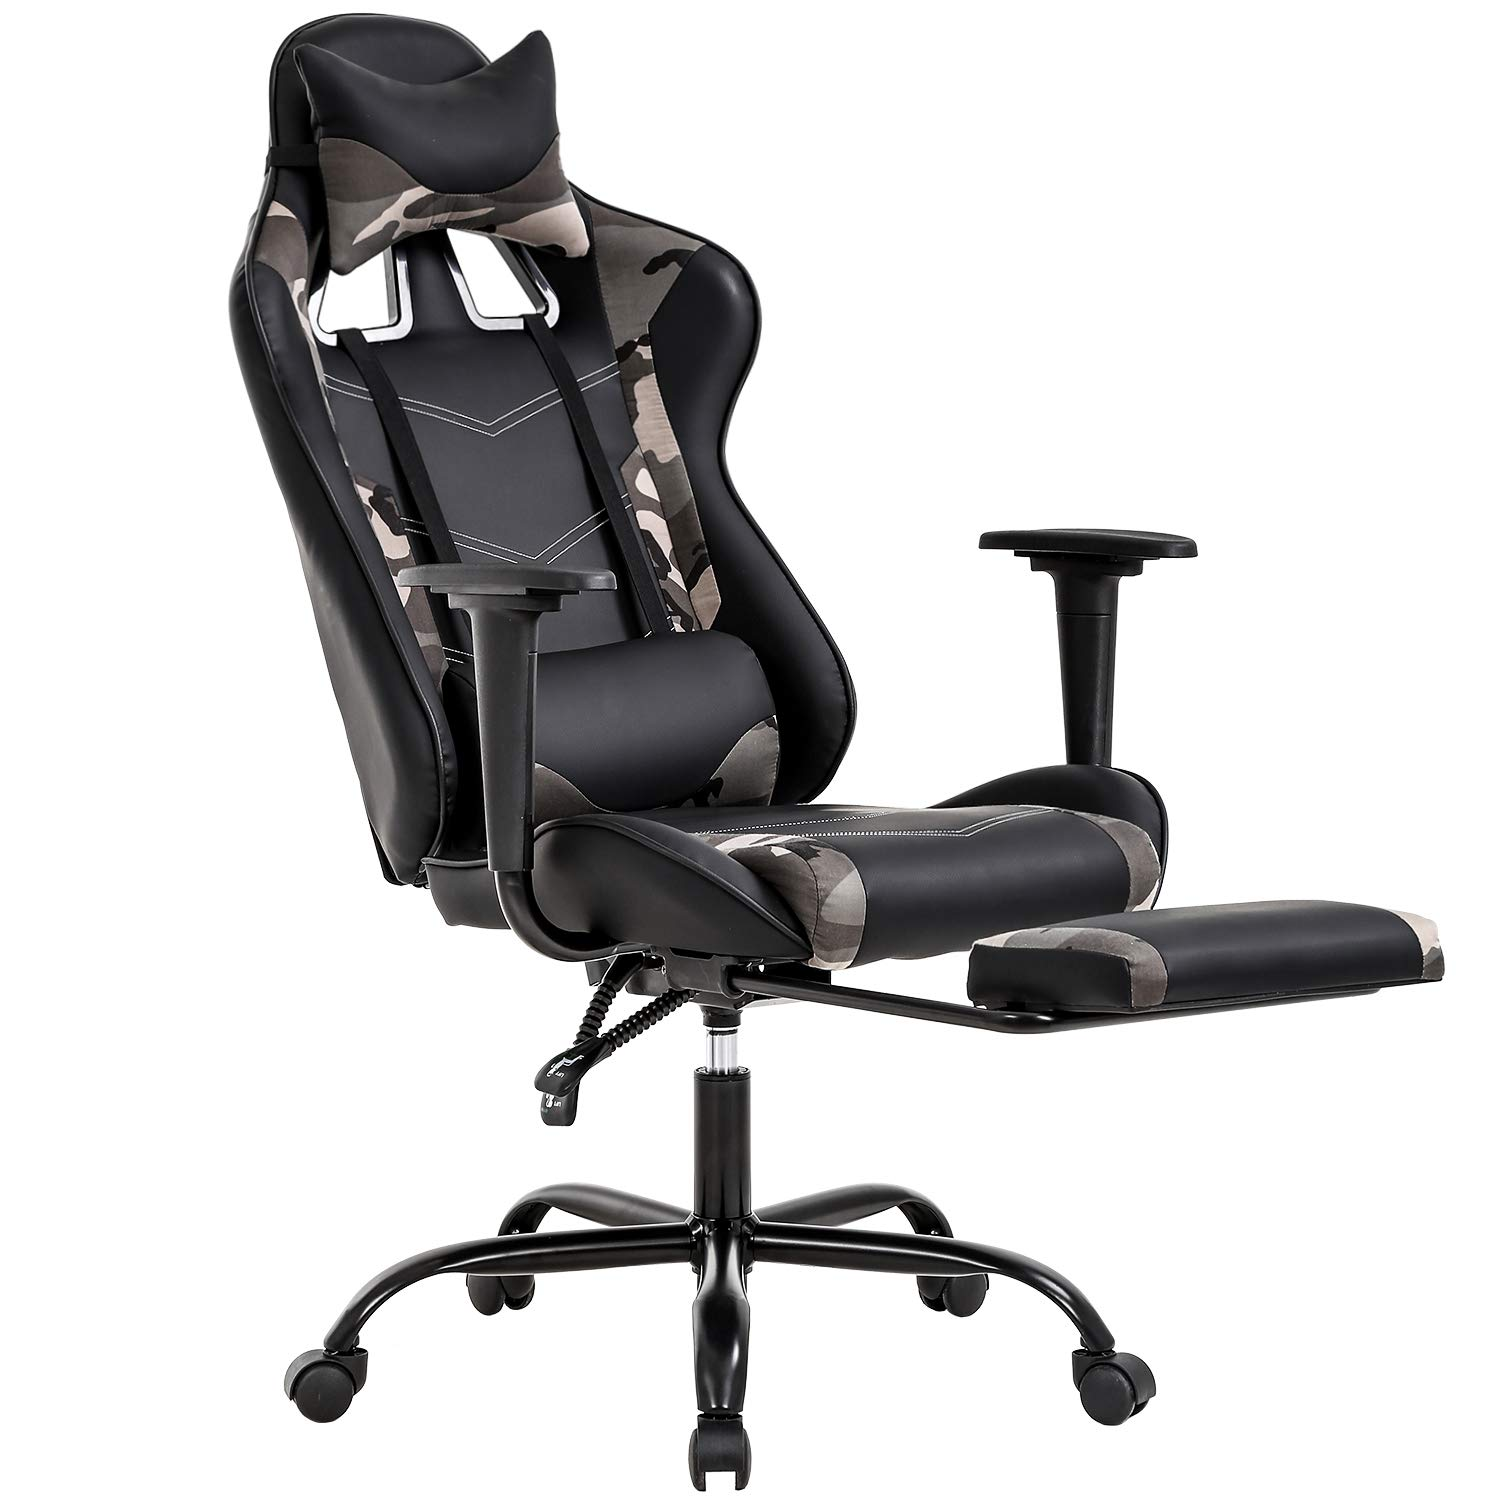 PC Gaming Chair Ergonomic Office Chair Desk Chair with Lumbar Support Headrest Arms Footrest Modern Task Rolling Swivel High Back PU Leather Computer Chair for Women Adults, Camo by BestOffice